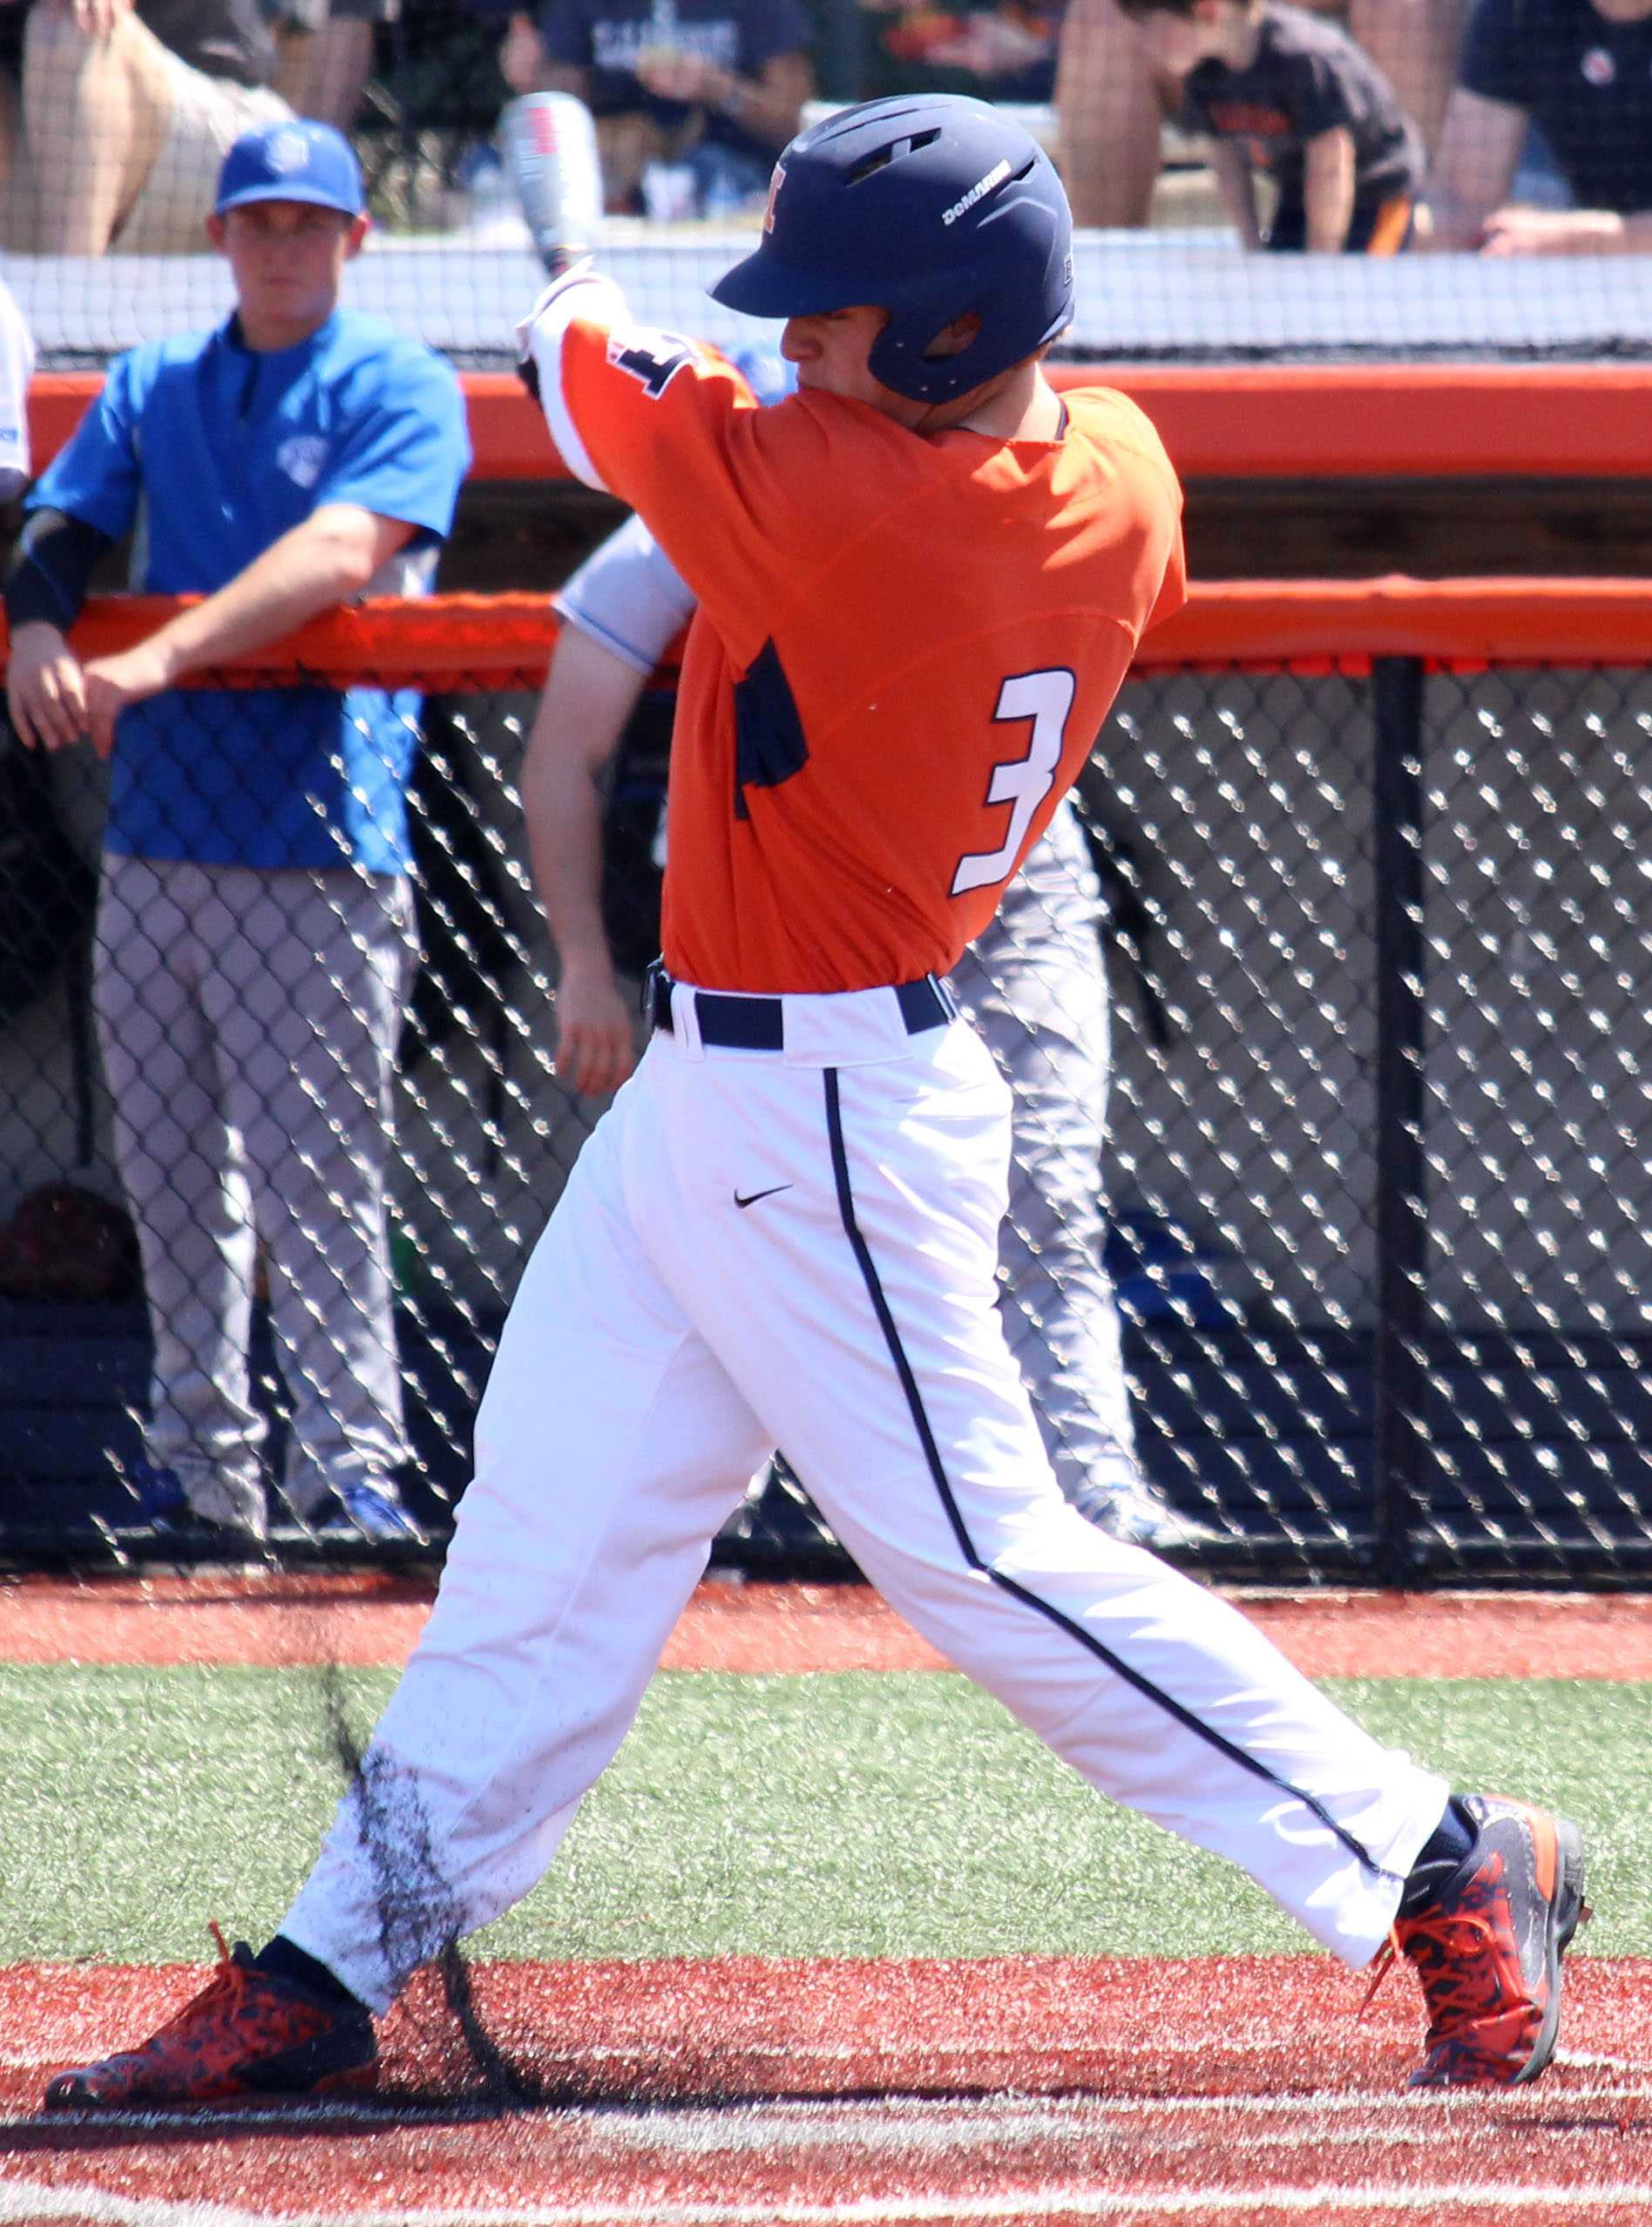 Jack Yalowitz takes a swing at Illinois Field on April 17, 2016. Illinois played against Saint Louis and won 6-2.